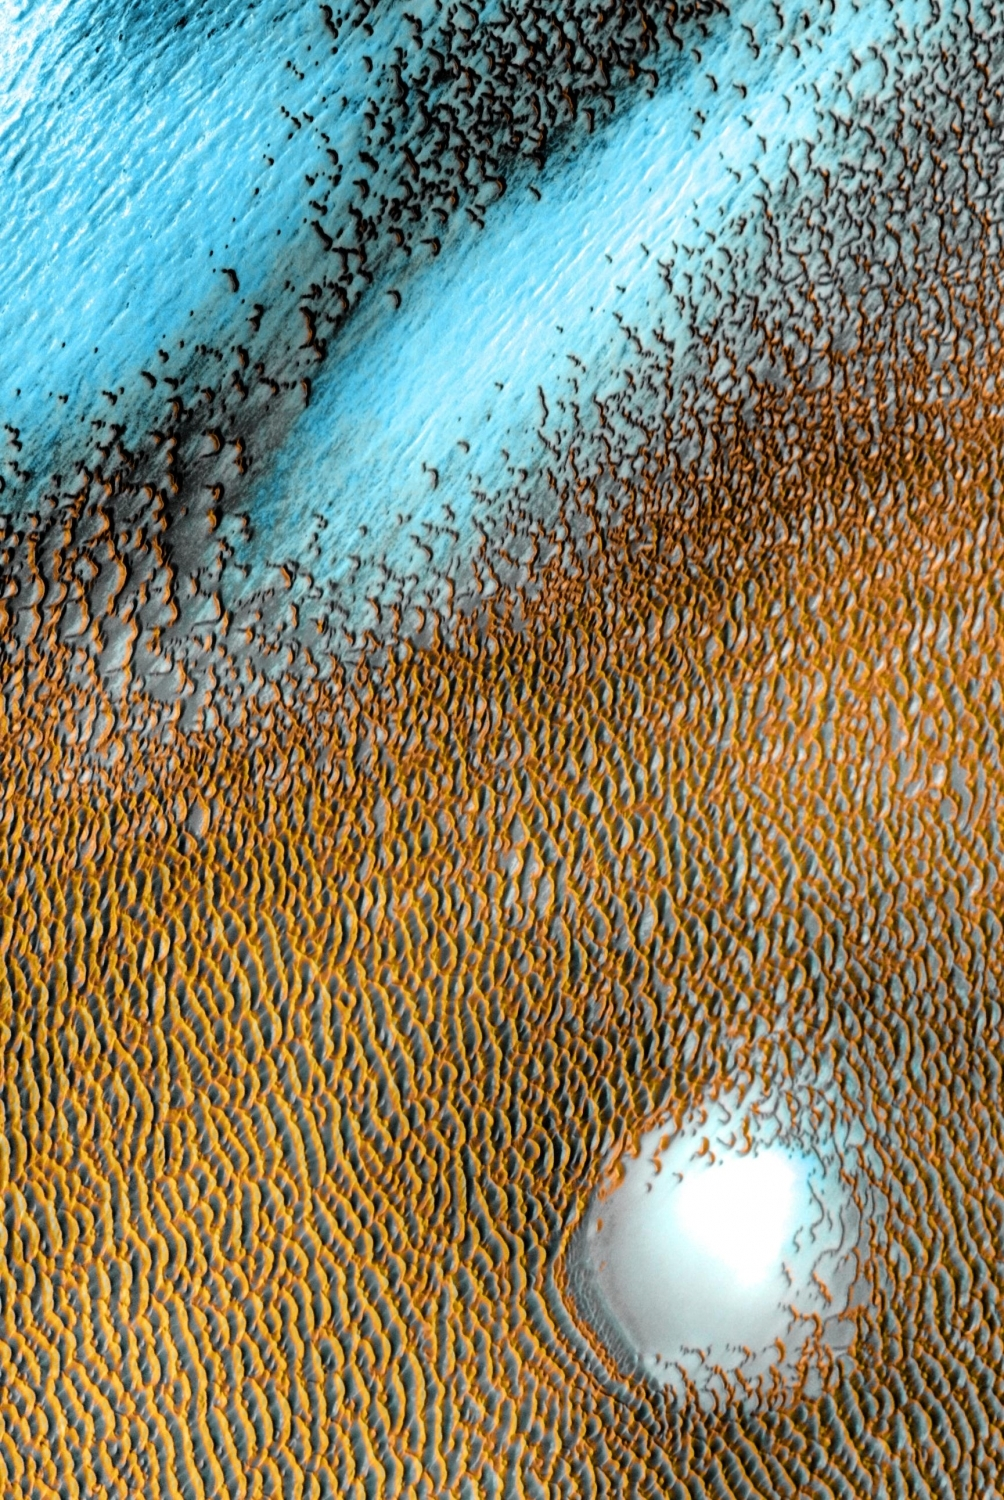 Pictures taken between 2002 and 2004 by Odyssey's THEMIS imager up this wind-sculpted sea of dark dunes that covers an area as big as Texas at Mars' northern polar cap. In this enhanced-colour image, cooler areas have in bluer tints, while warmer features are depicted in yellows and oranges. Photo: NASA/JPL-Caltech/ASU